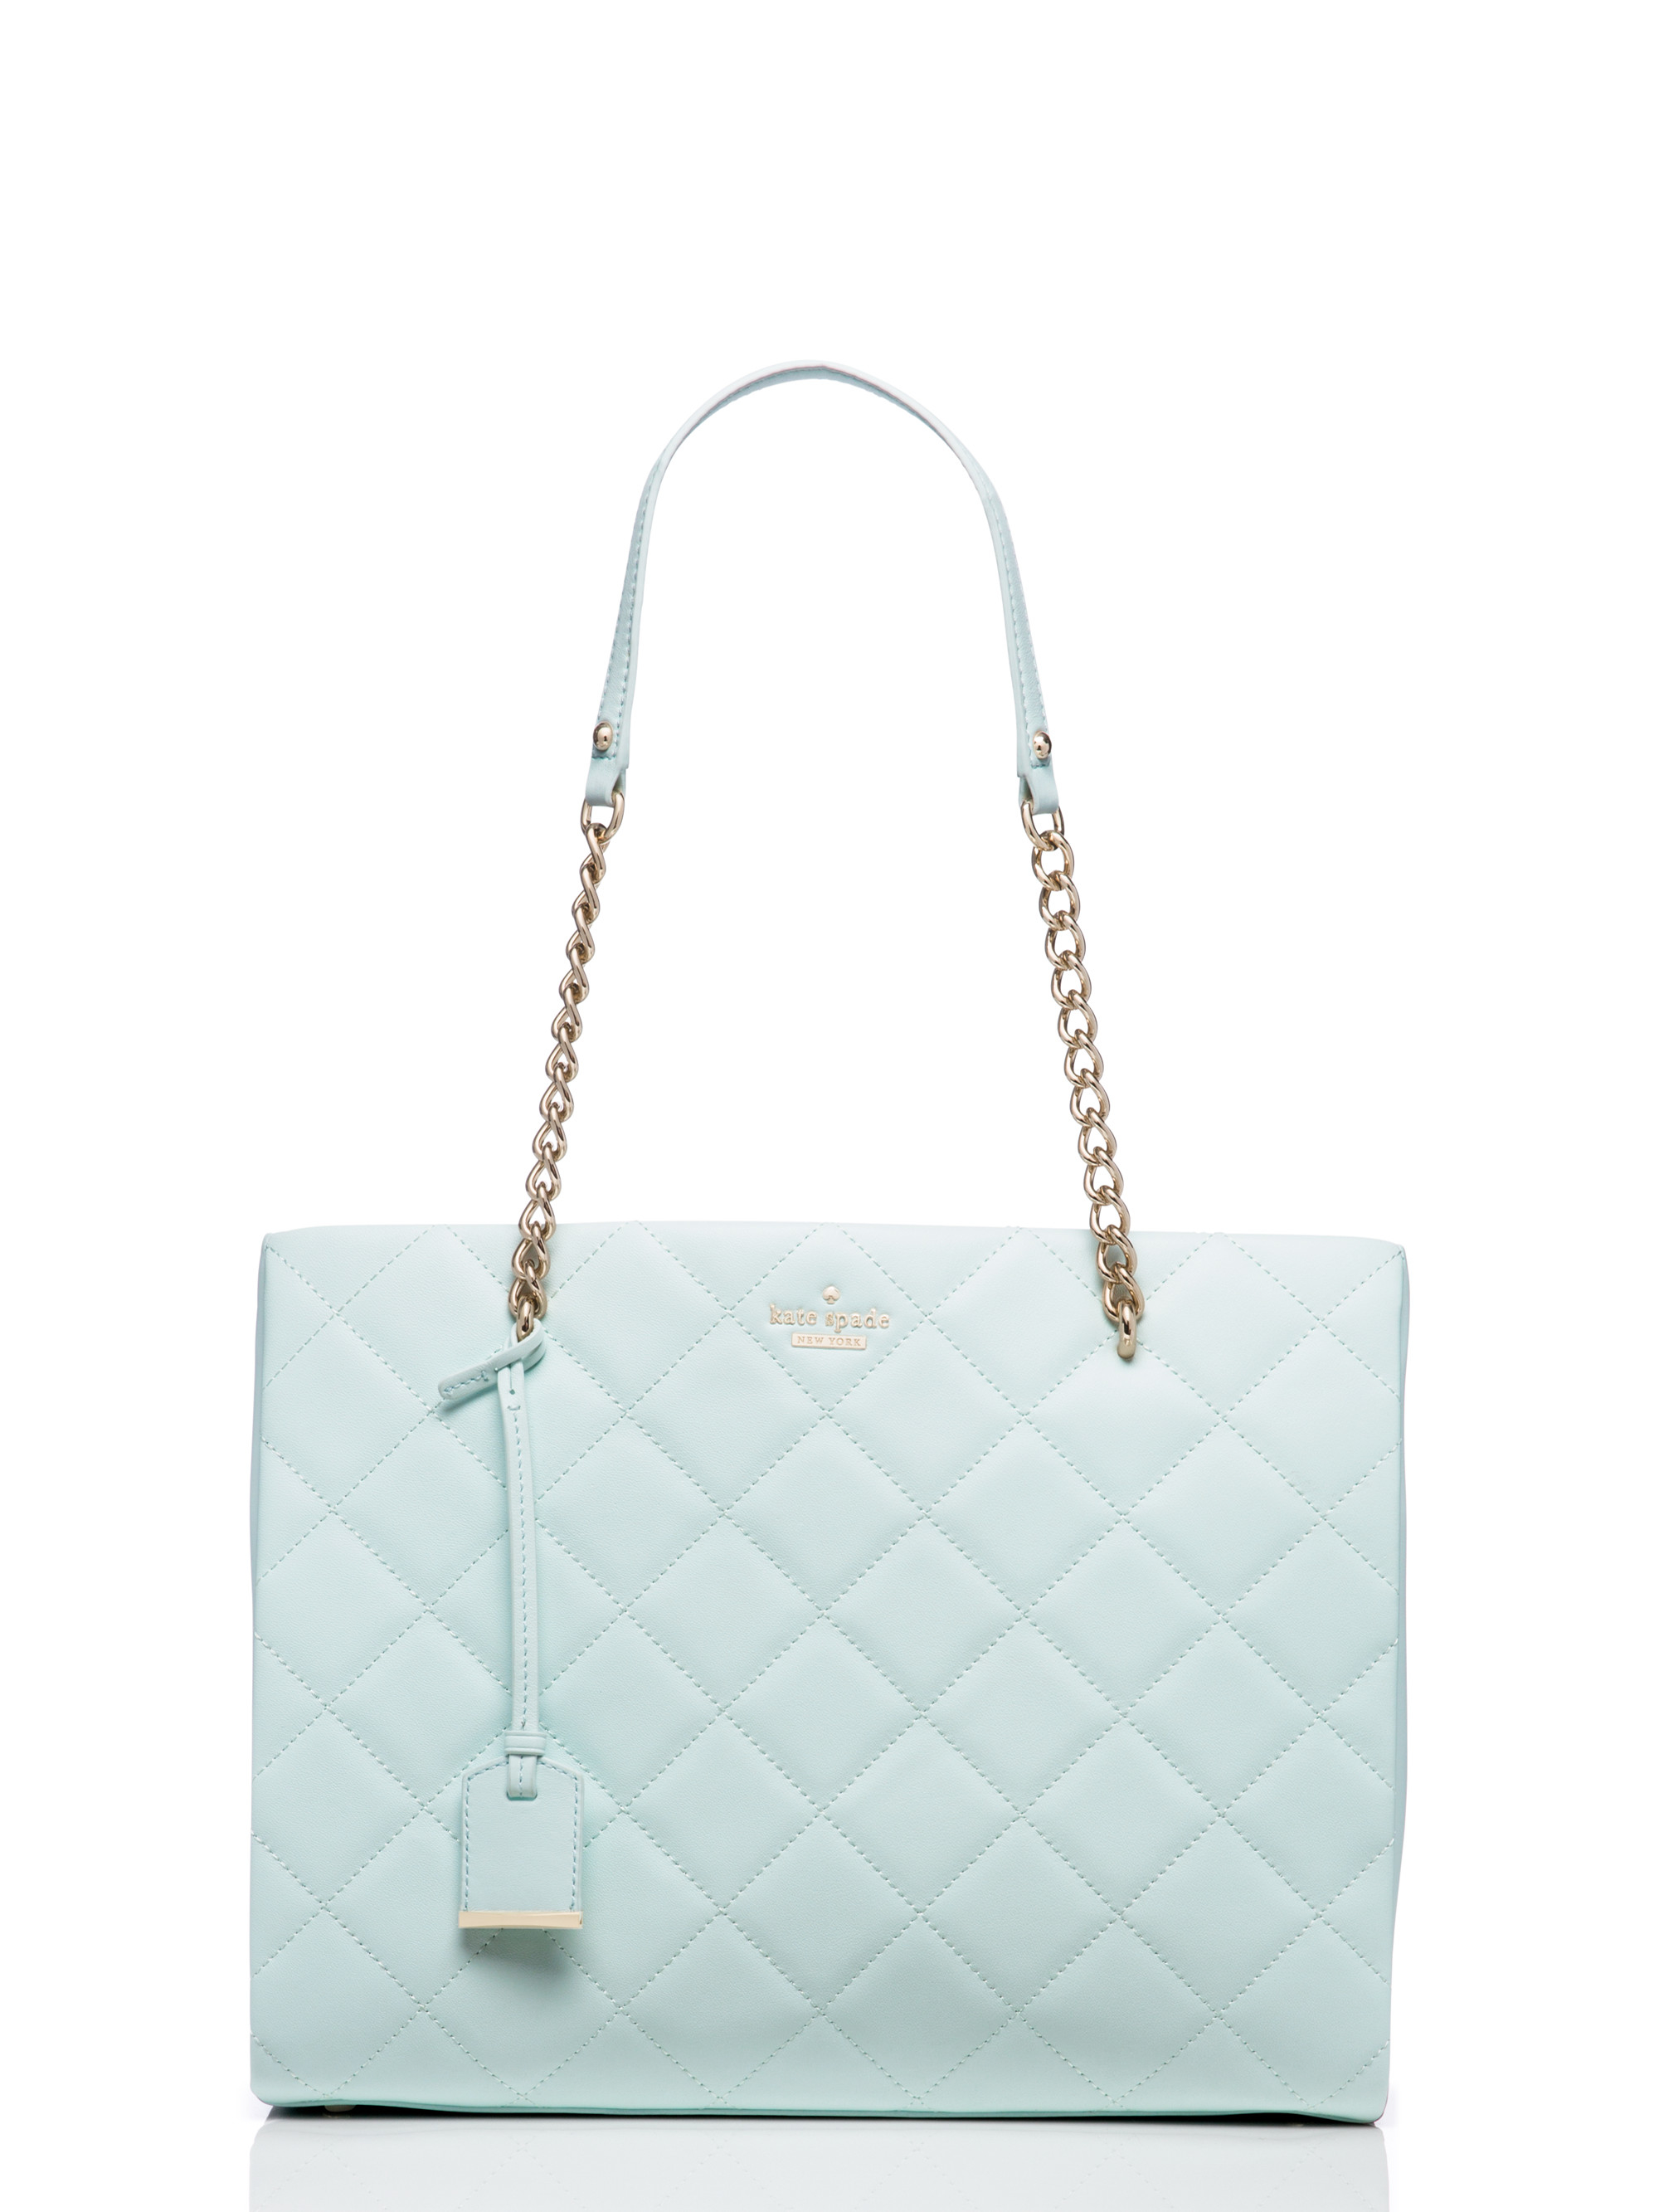 Kate spade Emerson Place Phoebe in Blue